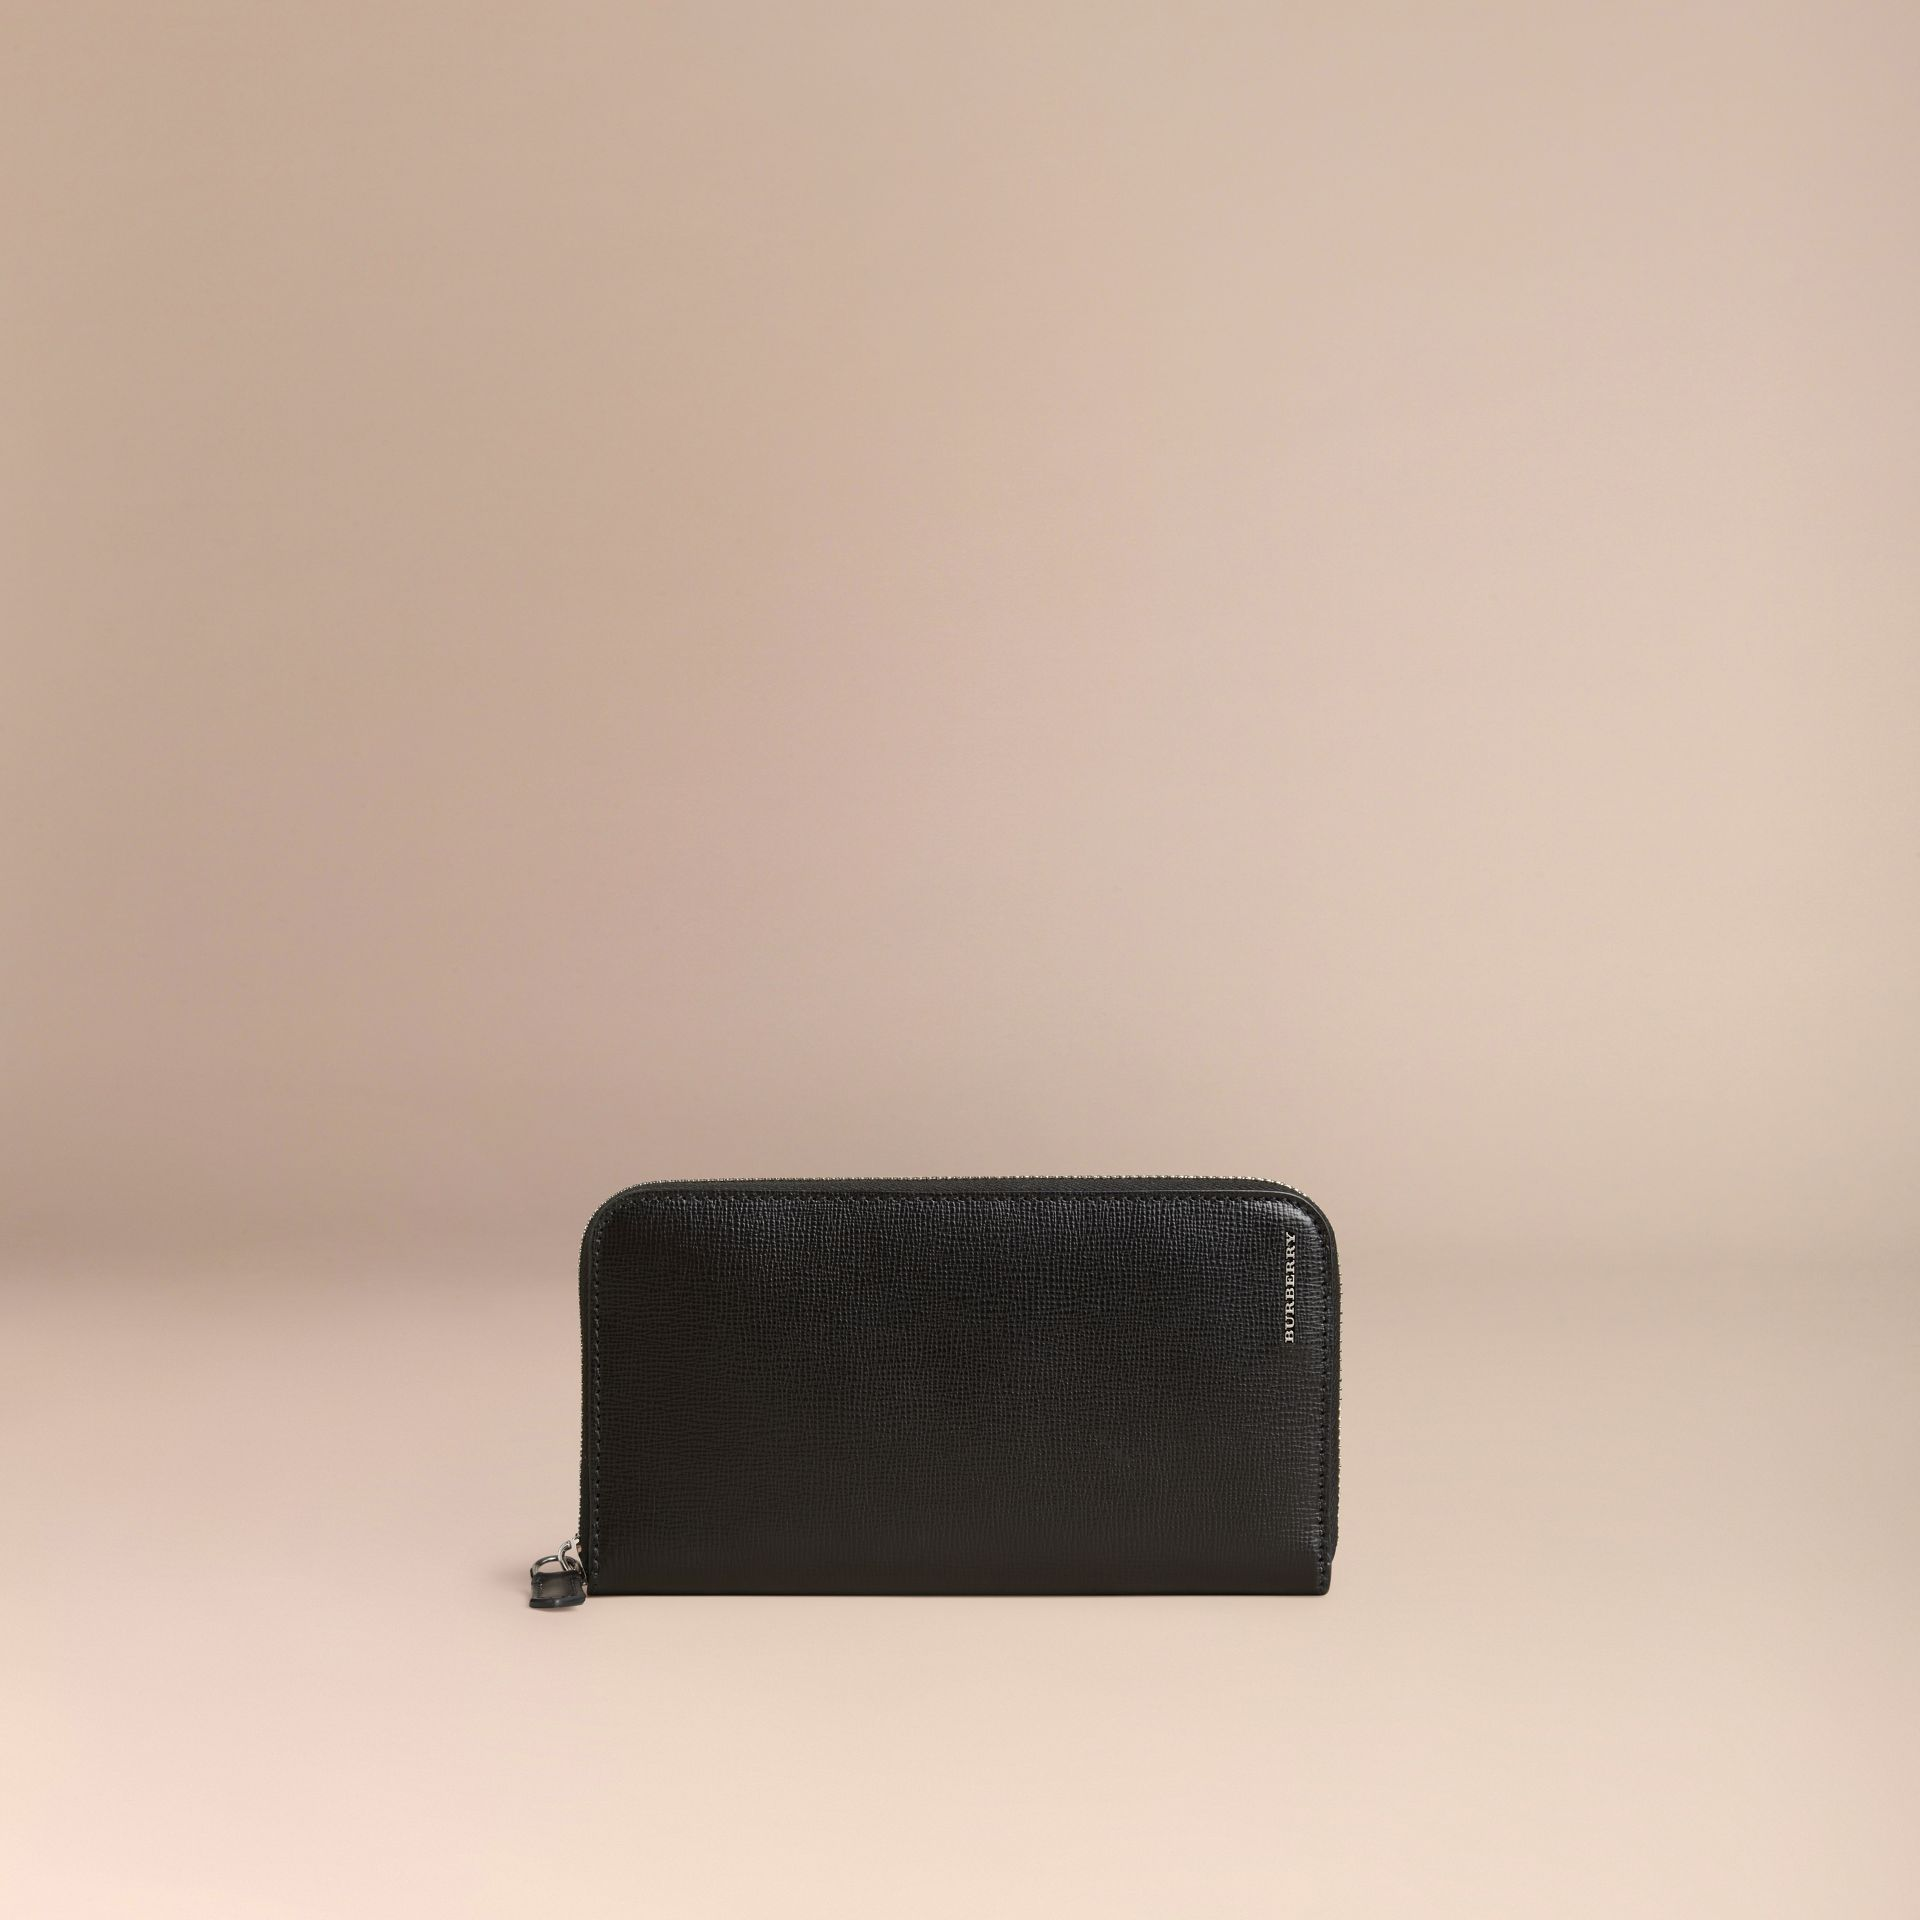 Black London Leather Ziparound Wallet Black - gallery image 3